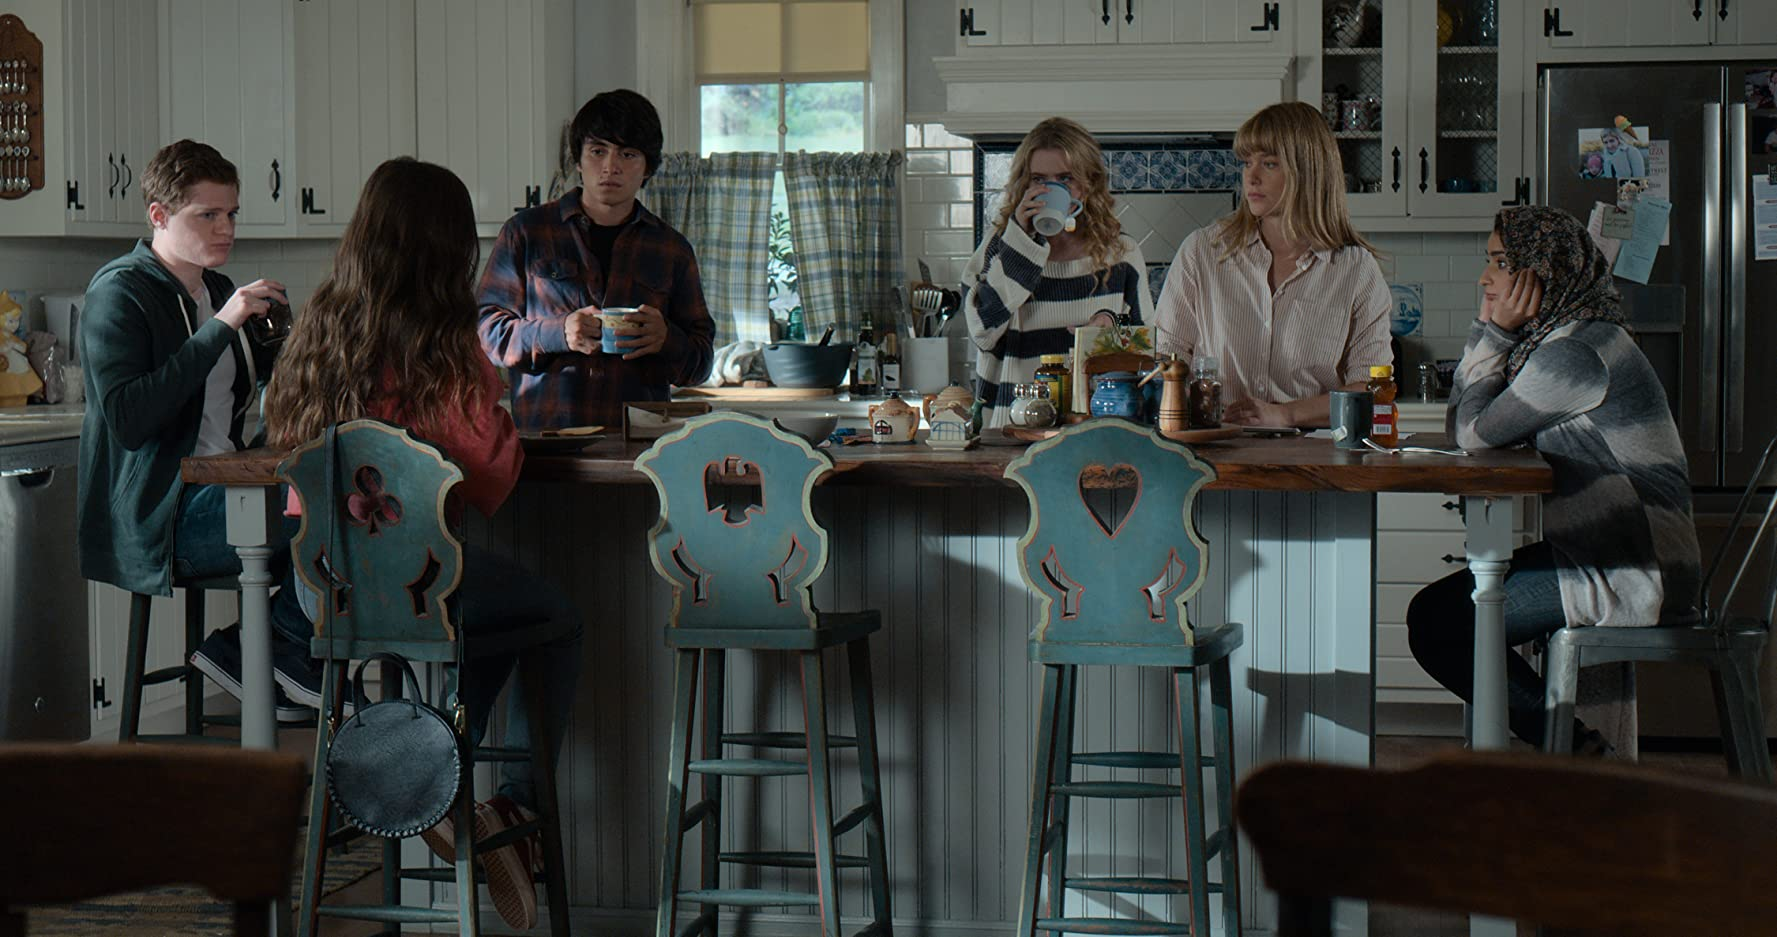 Kathryn Newton, José Julián, Sean Berdy, Gideon Adlon, Rachel Keller, and Salena Qureshi in The Society (2019)